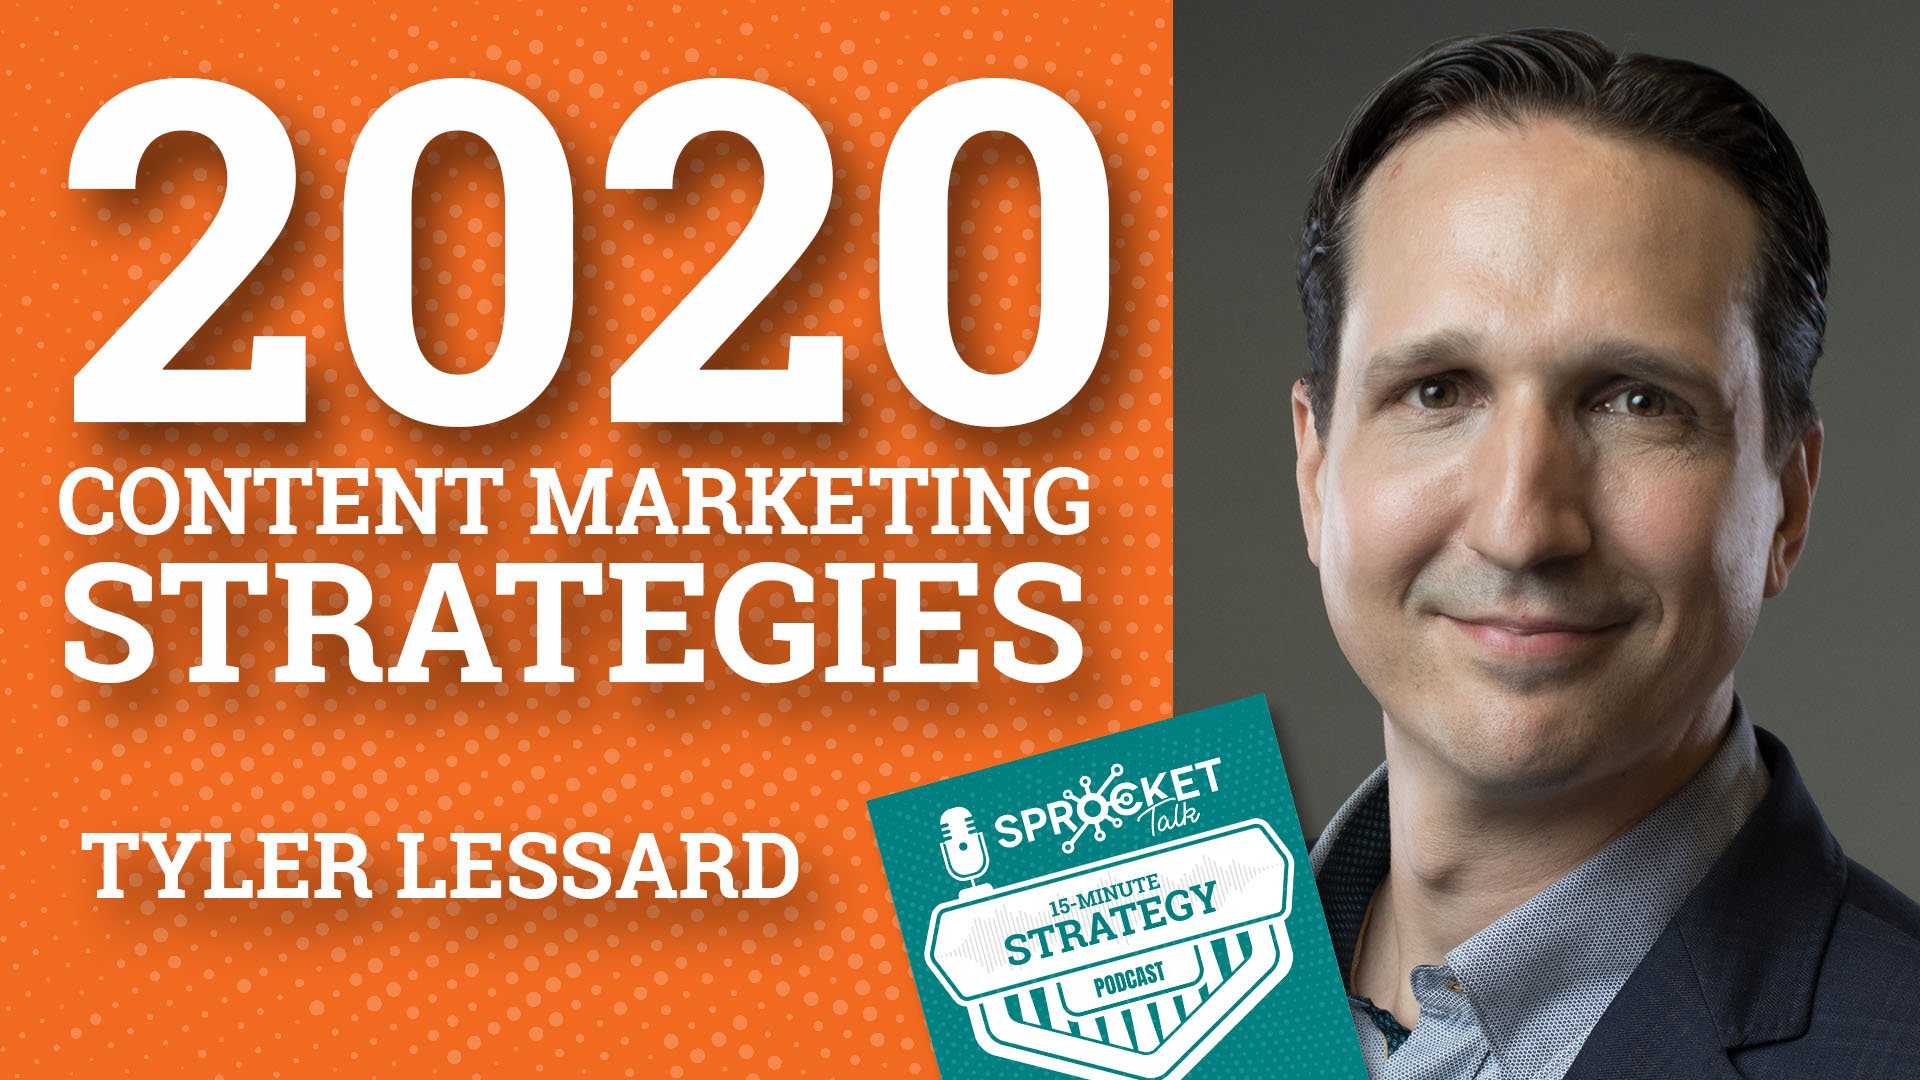 Tyler Lessard on Content Marketing Strategies for 2020 & Beyond | 15-Minute Strategy Podcast